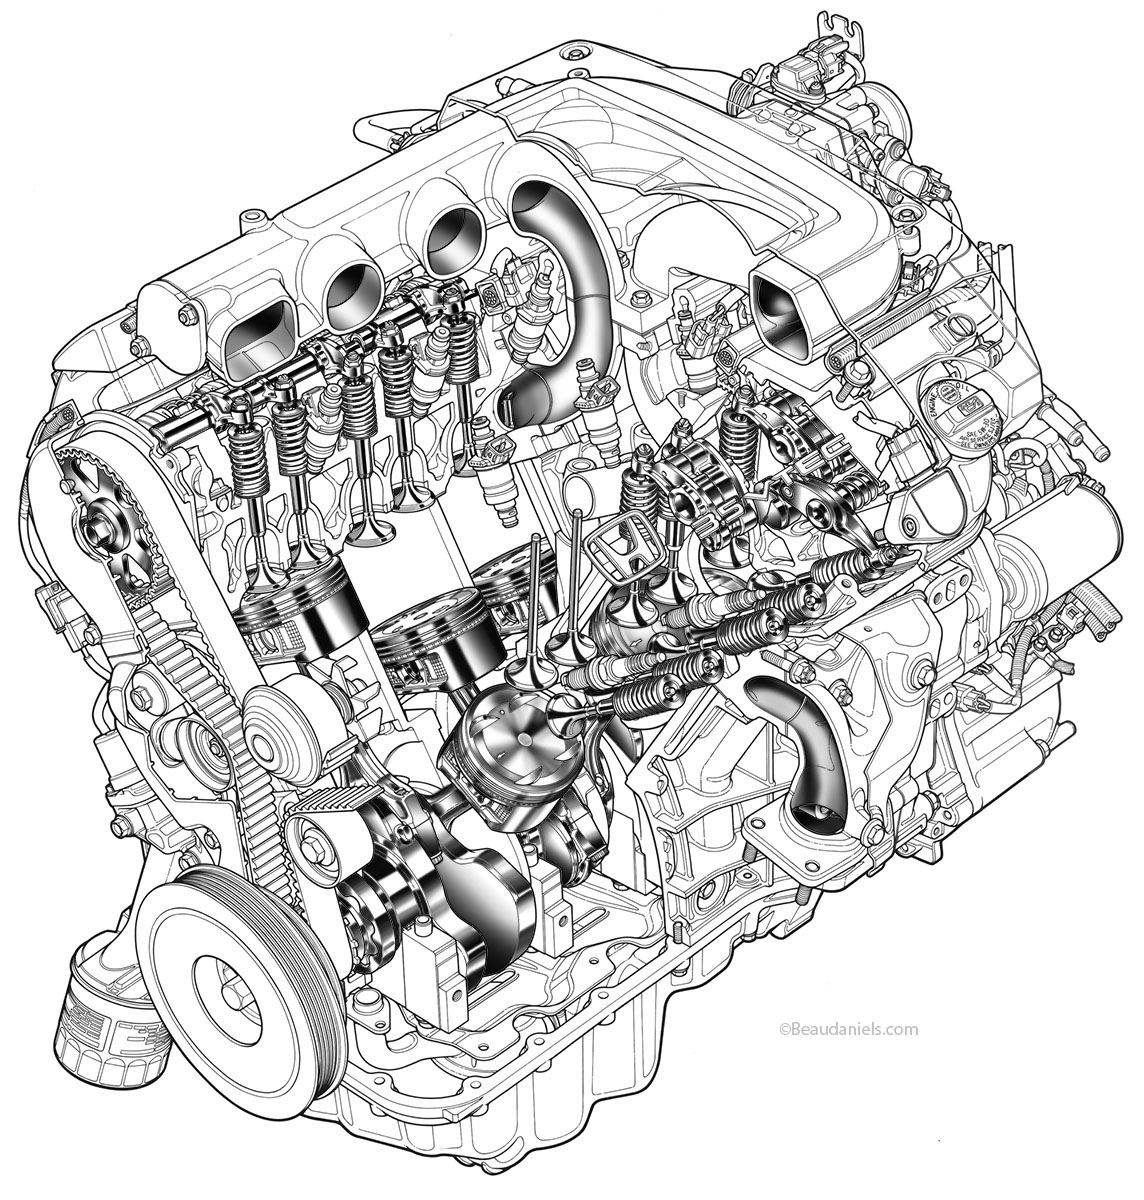 Famous car engine illustration photos electrical circuit diagram